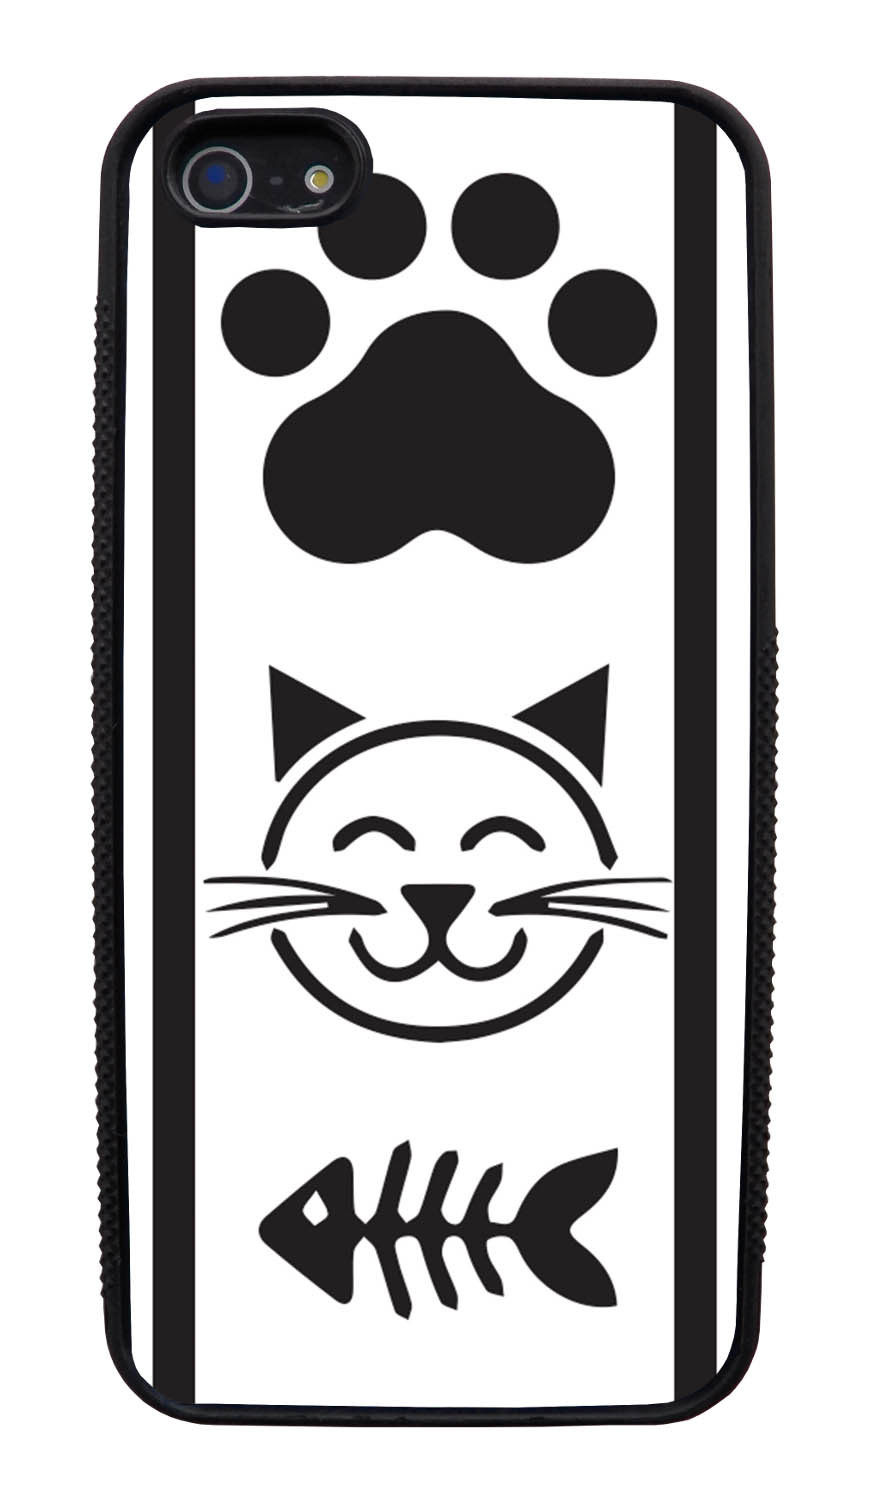 Apple iPhone 5 / 5S Cat Case - Black Cat Icons on White - Simple Stencils Cutout - Black Slim Rubber Case